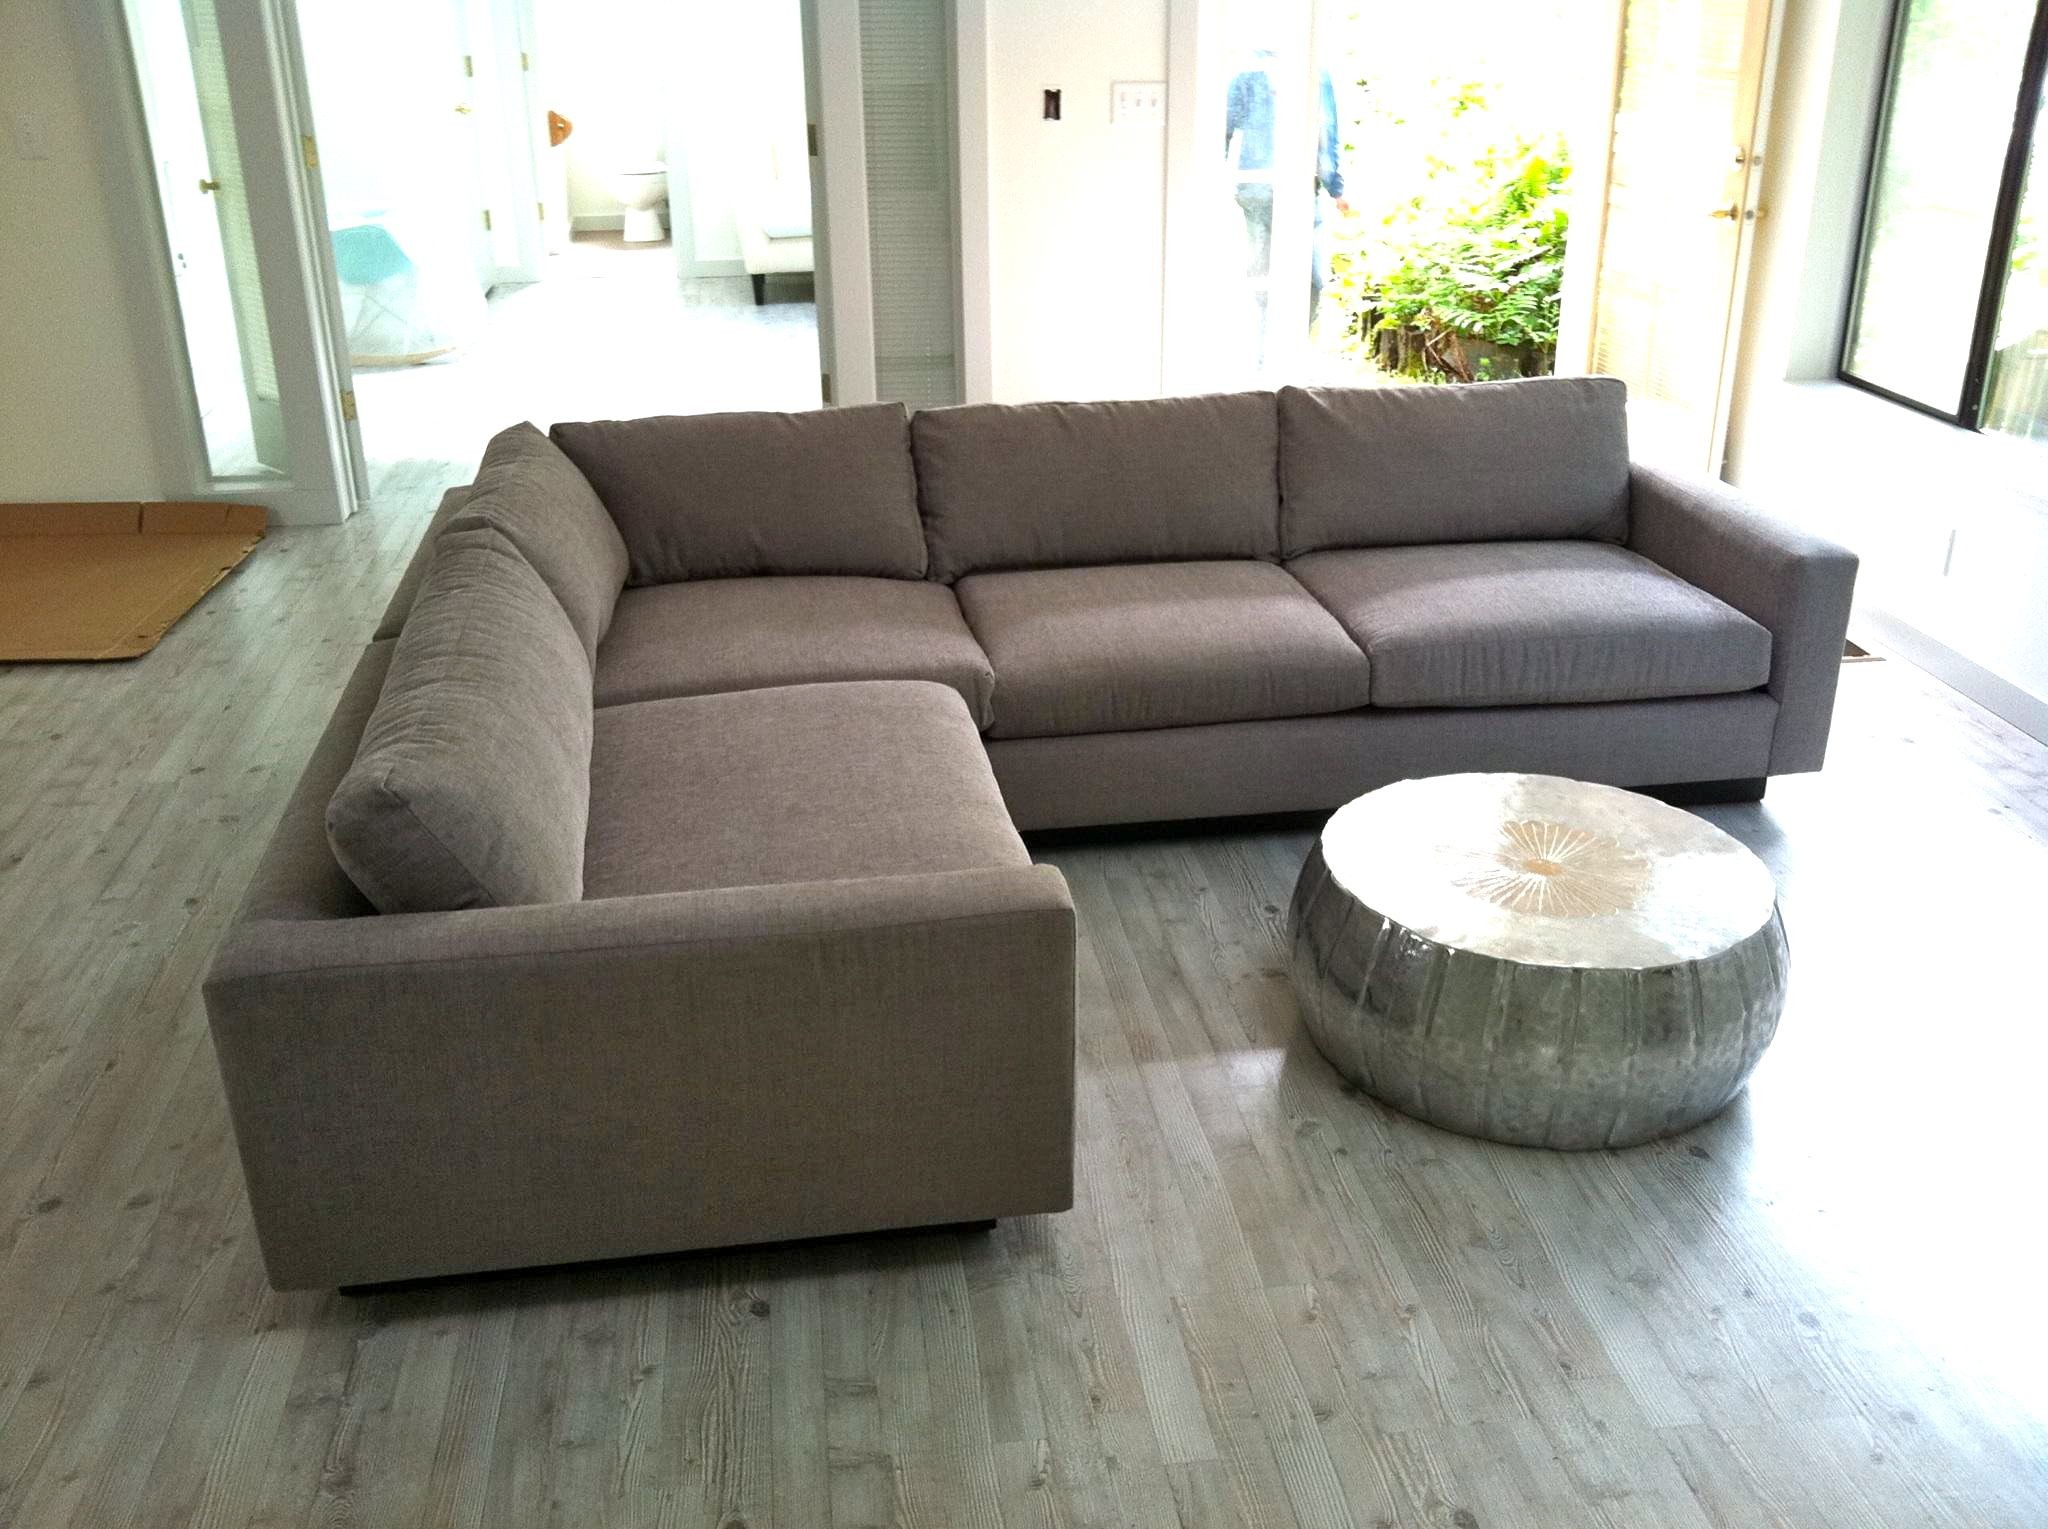 Deep Seated sofa Sectional Stylish Great Deep Seated sofa Sectional Contemporary sofa Concept